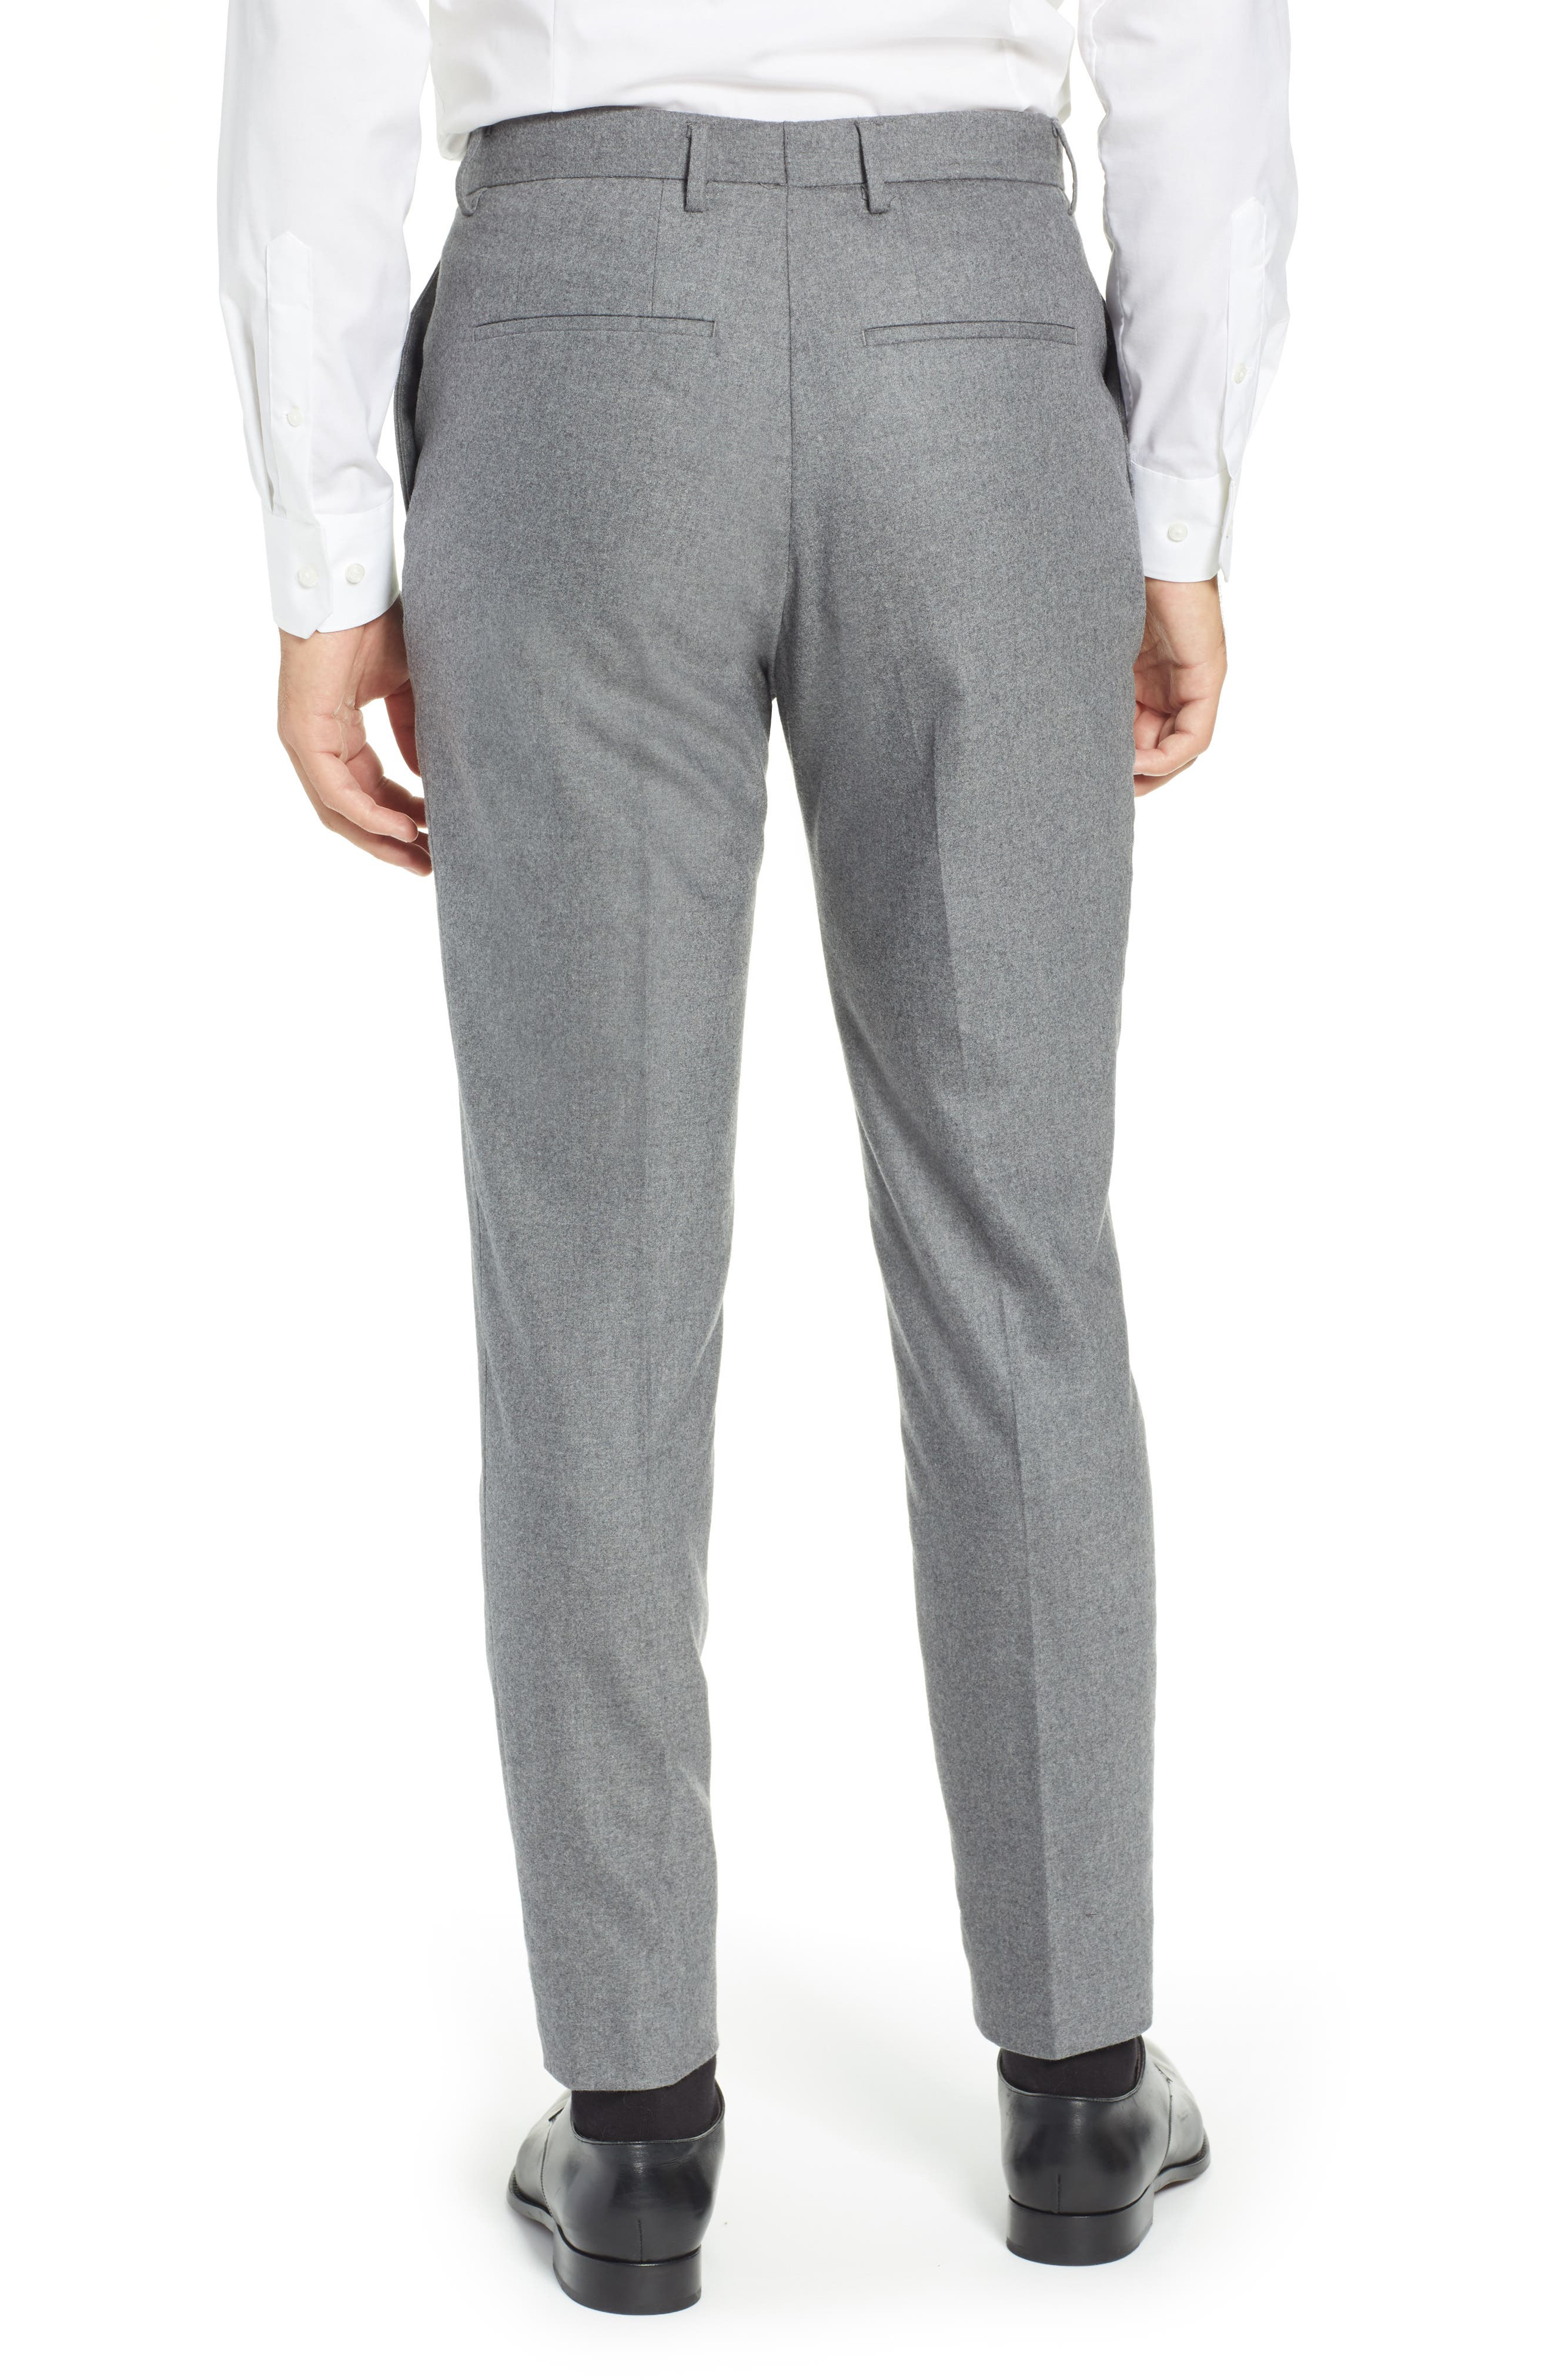 Pirko Flat Front Solid Stretch Wool Trousers,                             Alternate thumbnail 2, color,                             MEDIUM GREY